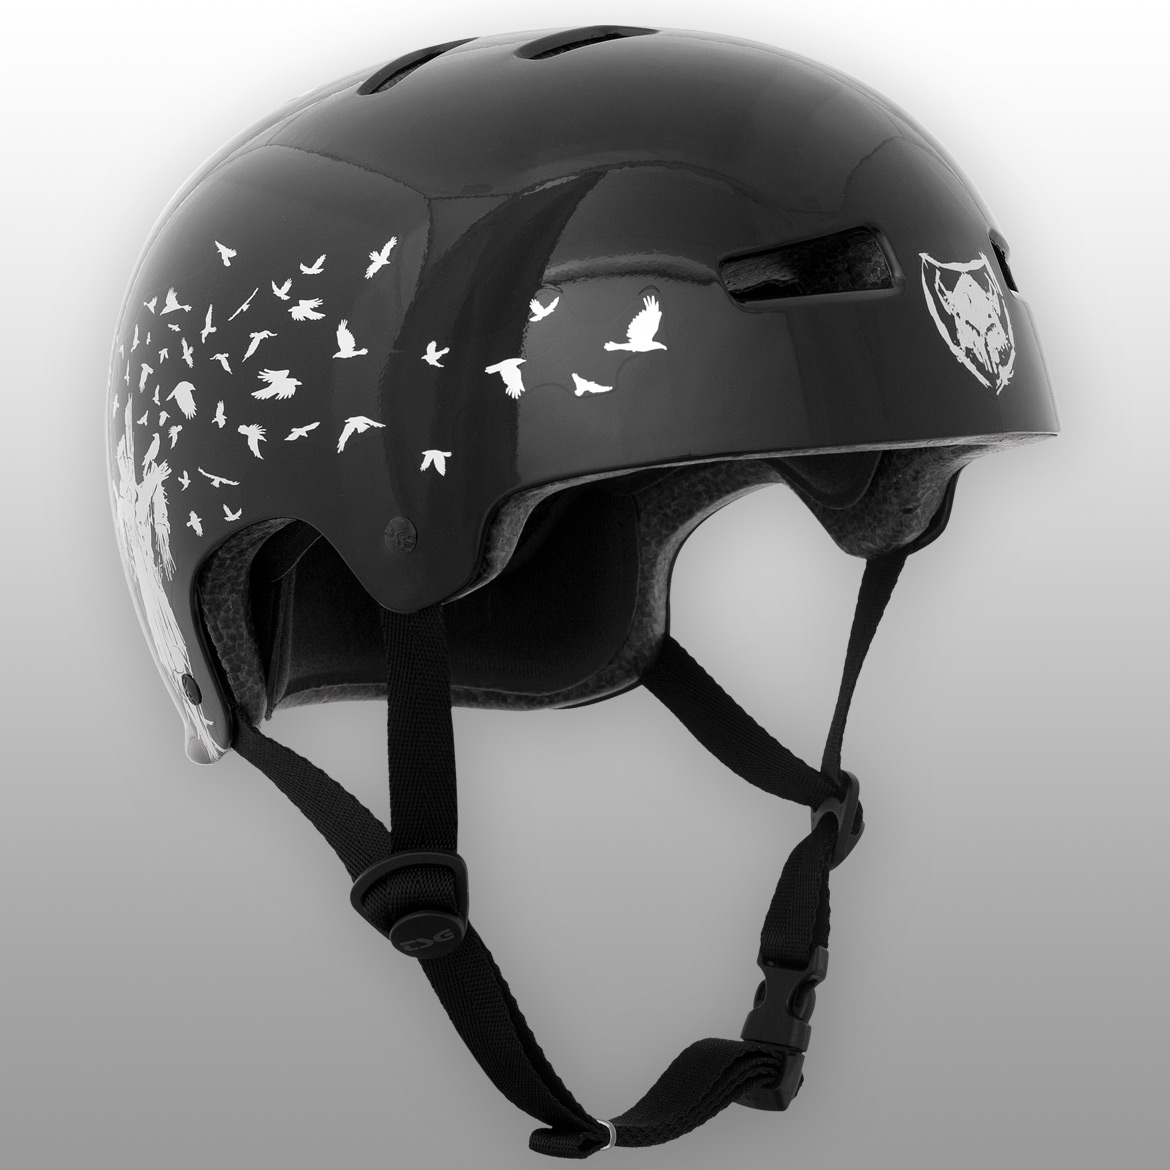 design of helmet essay Simply put, after you decide to join the ranks of the worldwide moto-calvary, buying the right motorcycle helmet or motorcycle helmets for you and your fellow riders will be the single most important purchase that you make thereafter.